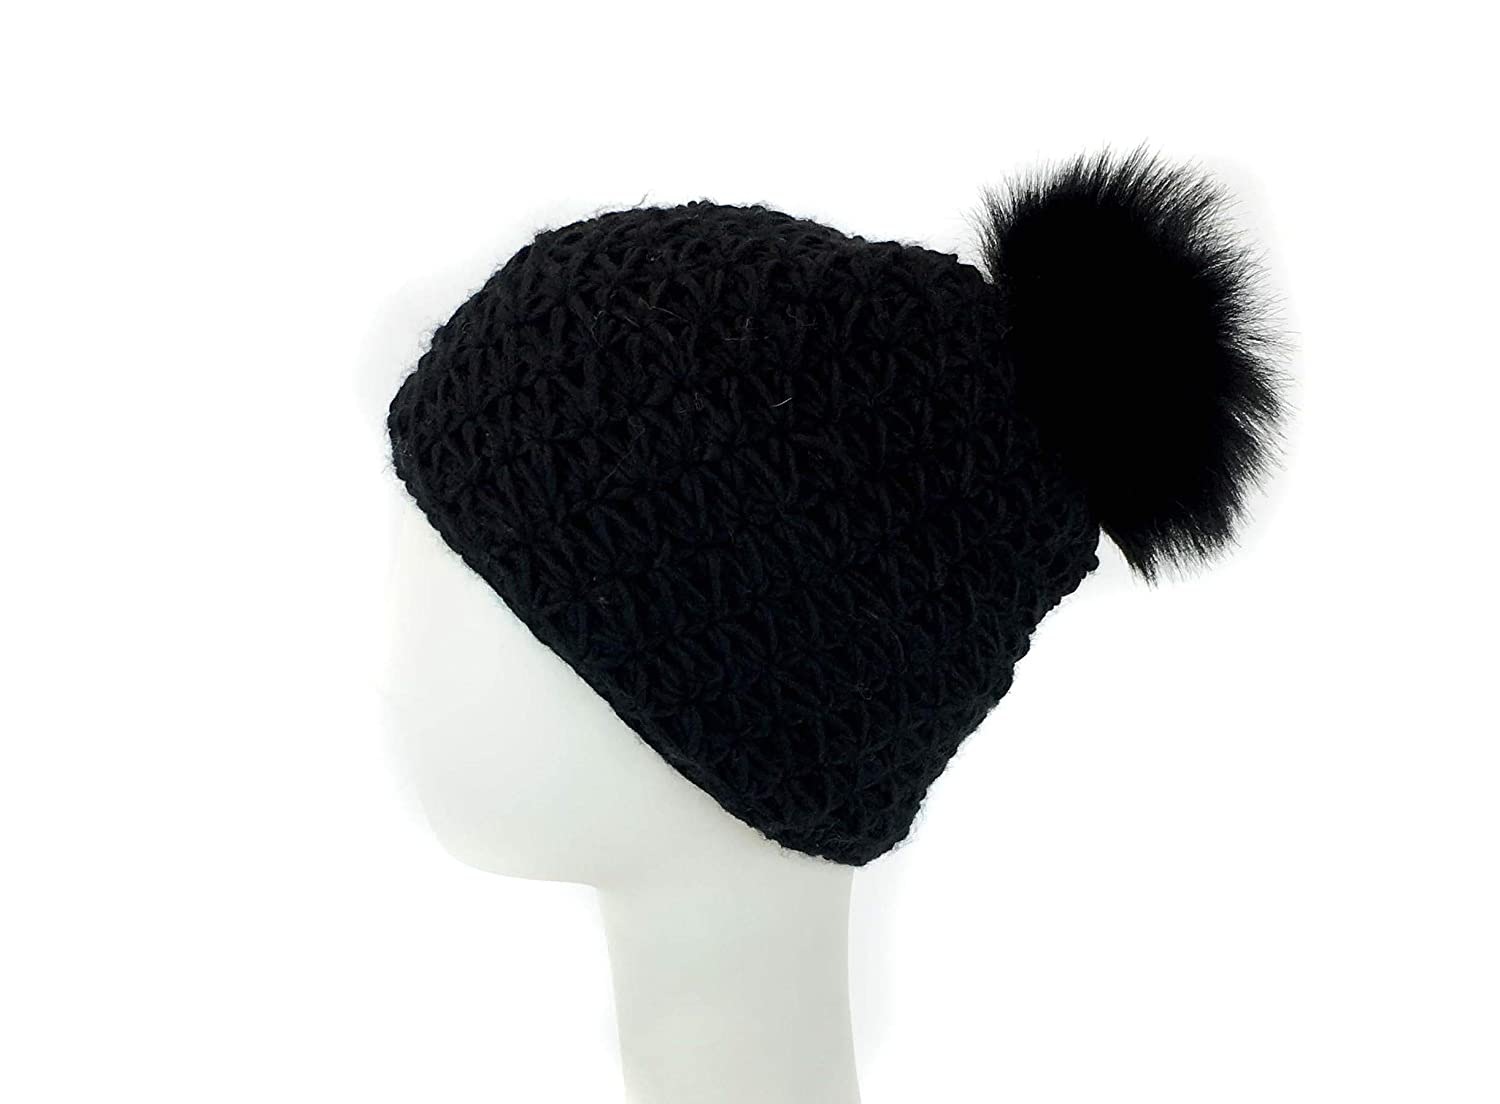 7a42830a8f4 surell Handmade Starfish Knit Hat with Faux Fur Pom - Winter Ski Cap  (Black) at Amazon Women s Clothing store